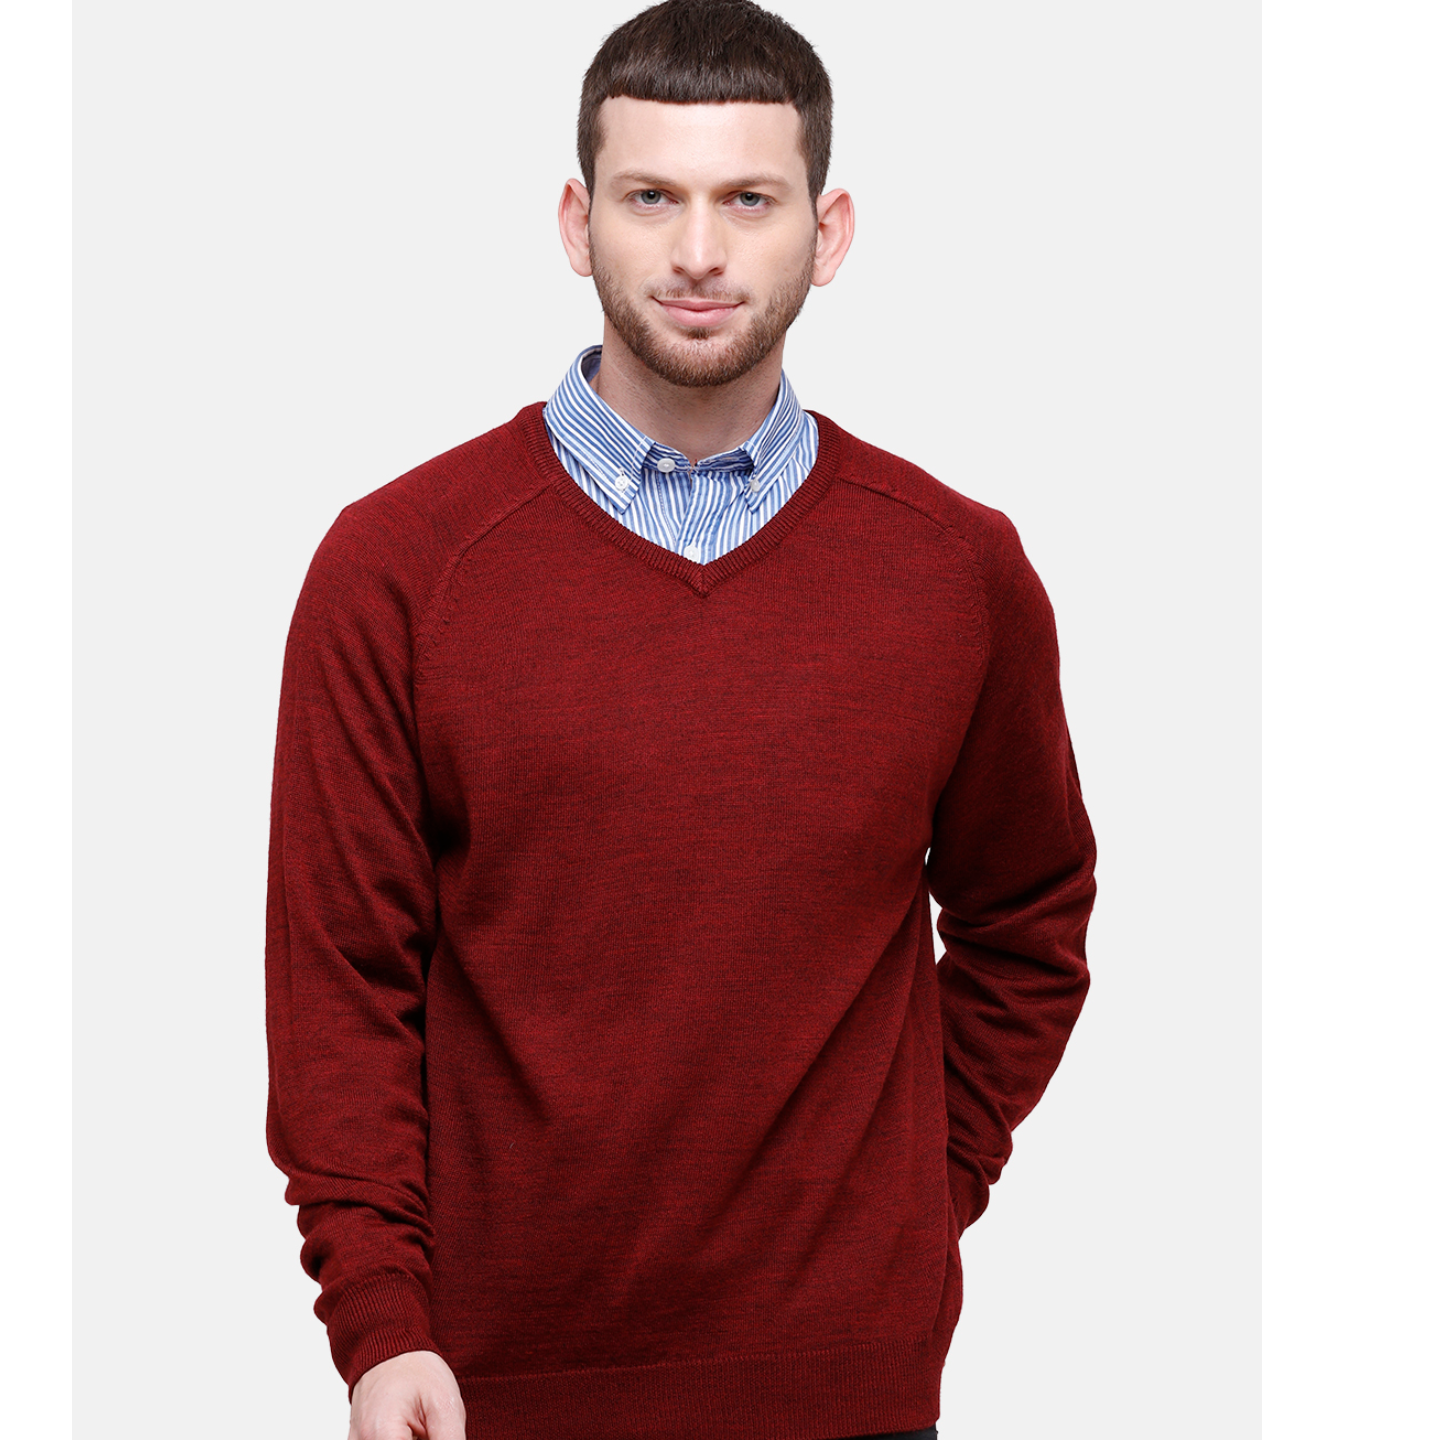 Wool Blend Red Sweater